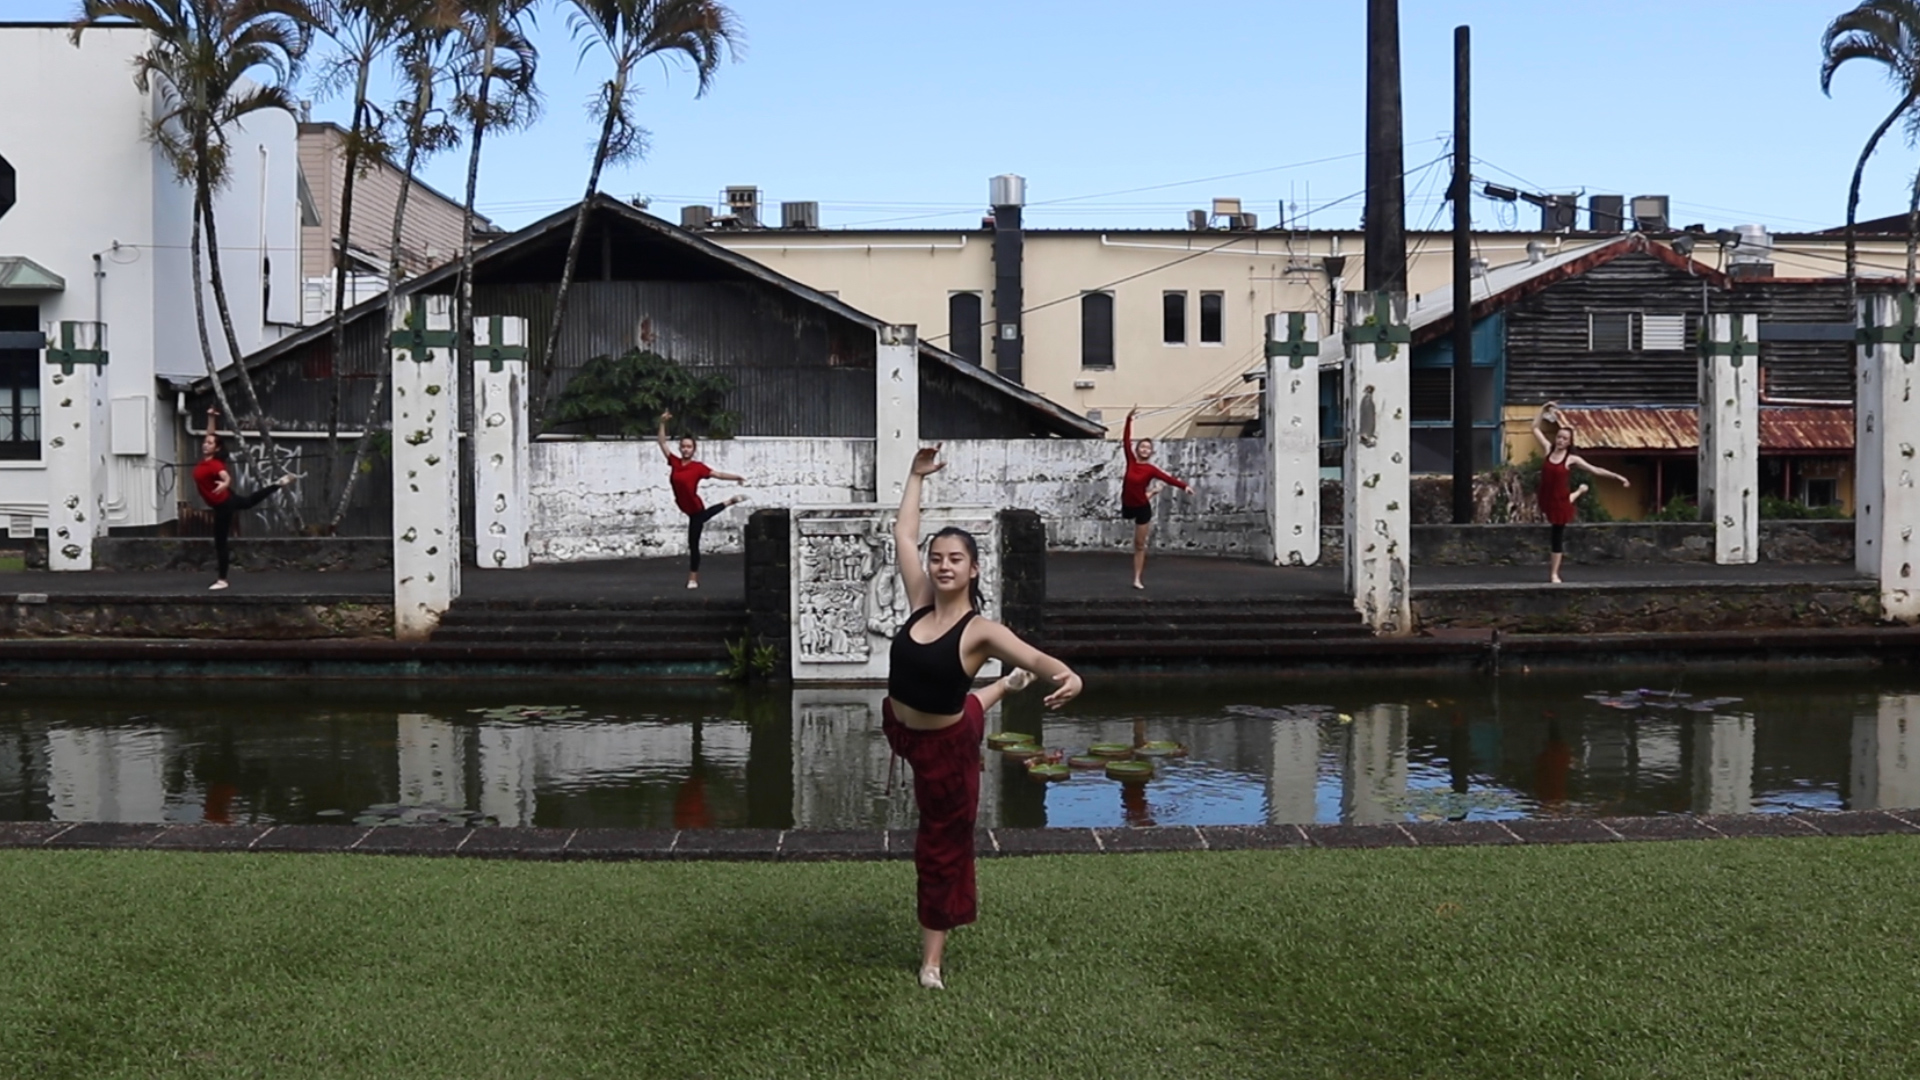 Group of ballet dancers wearing black and red near water feature at Kalakaua Park.